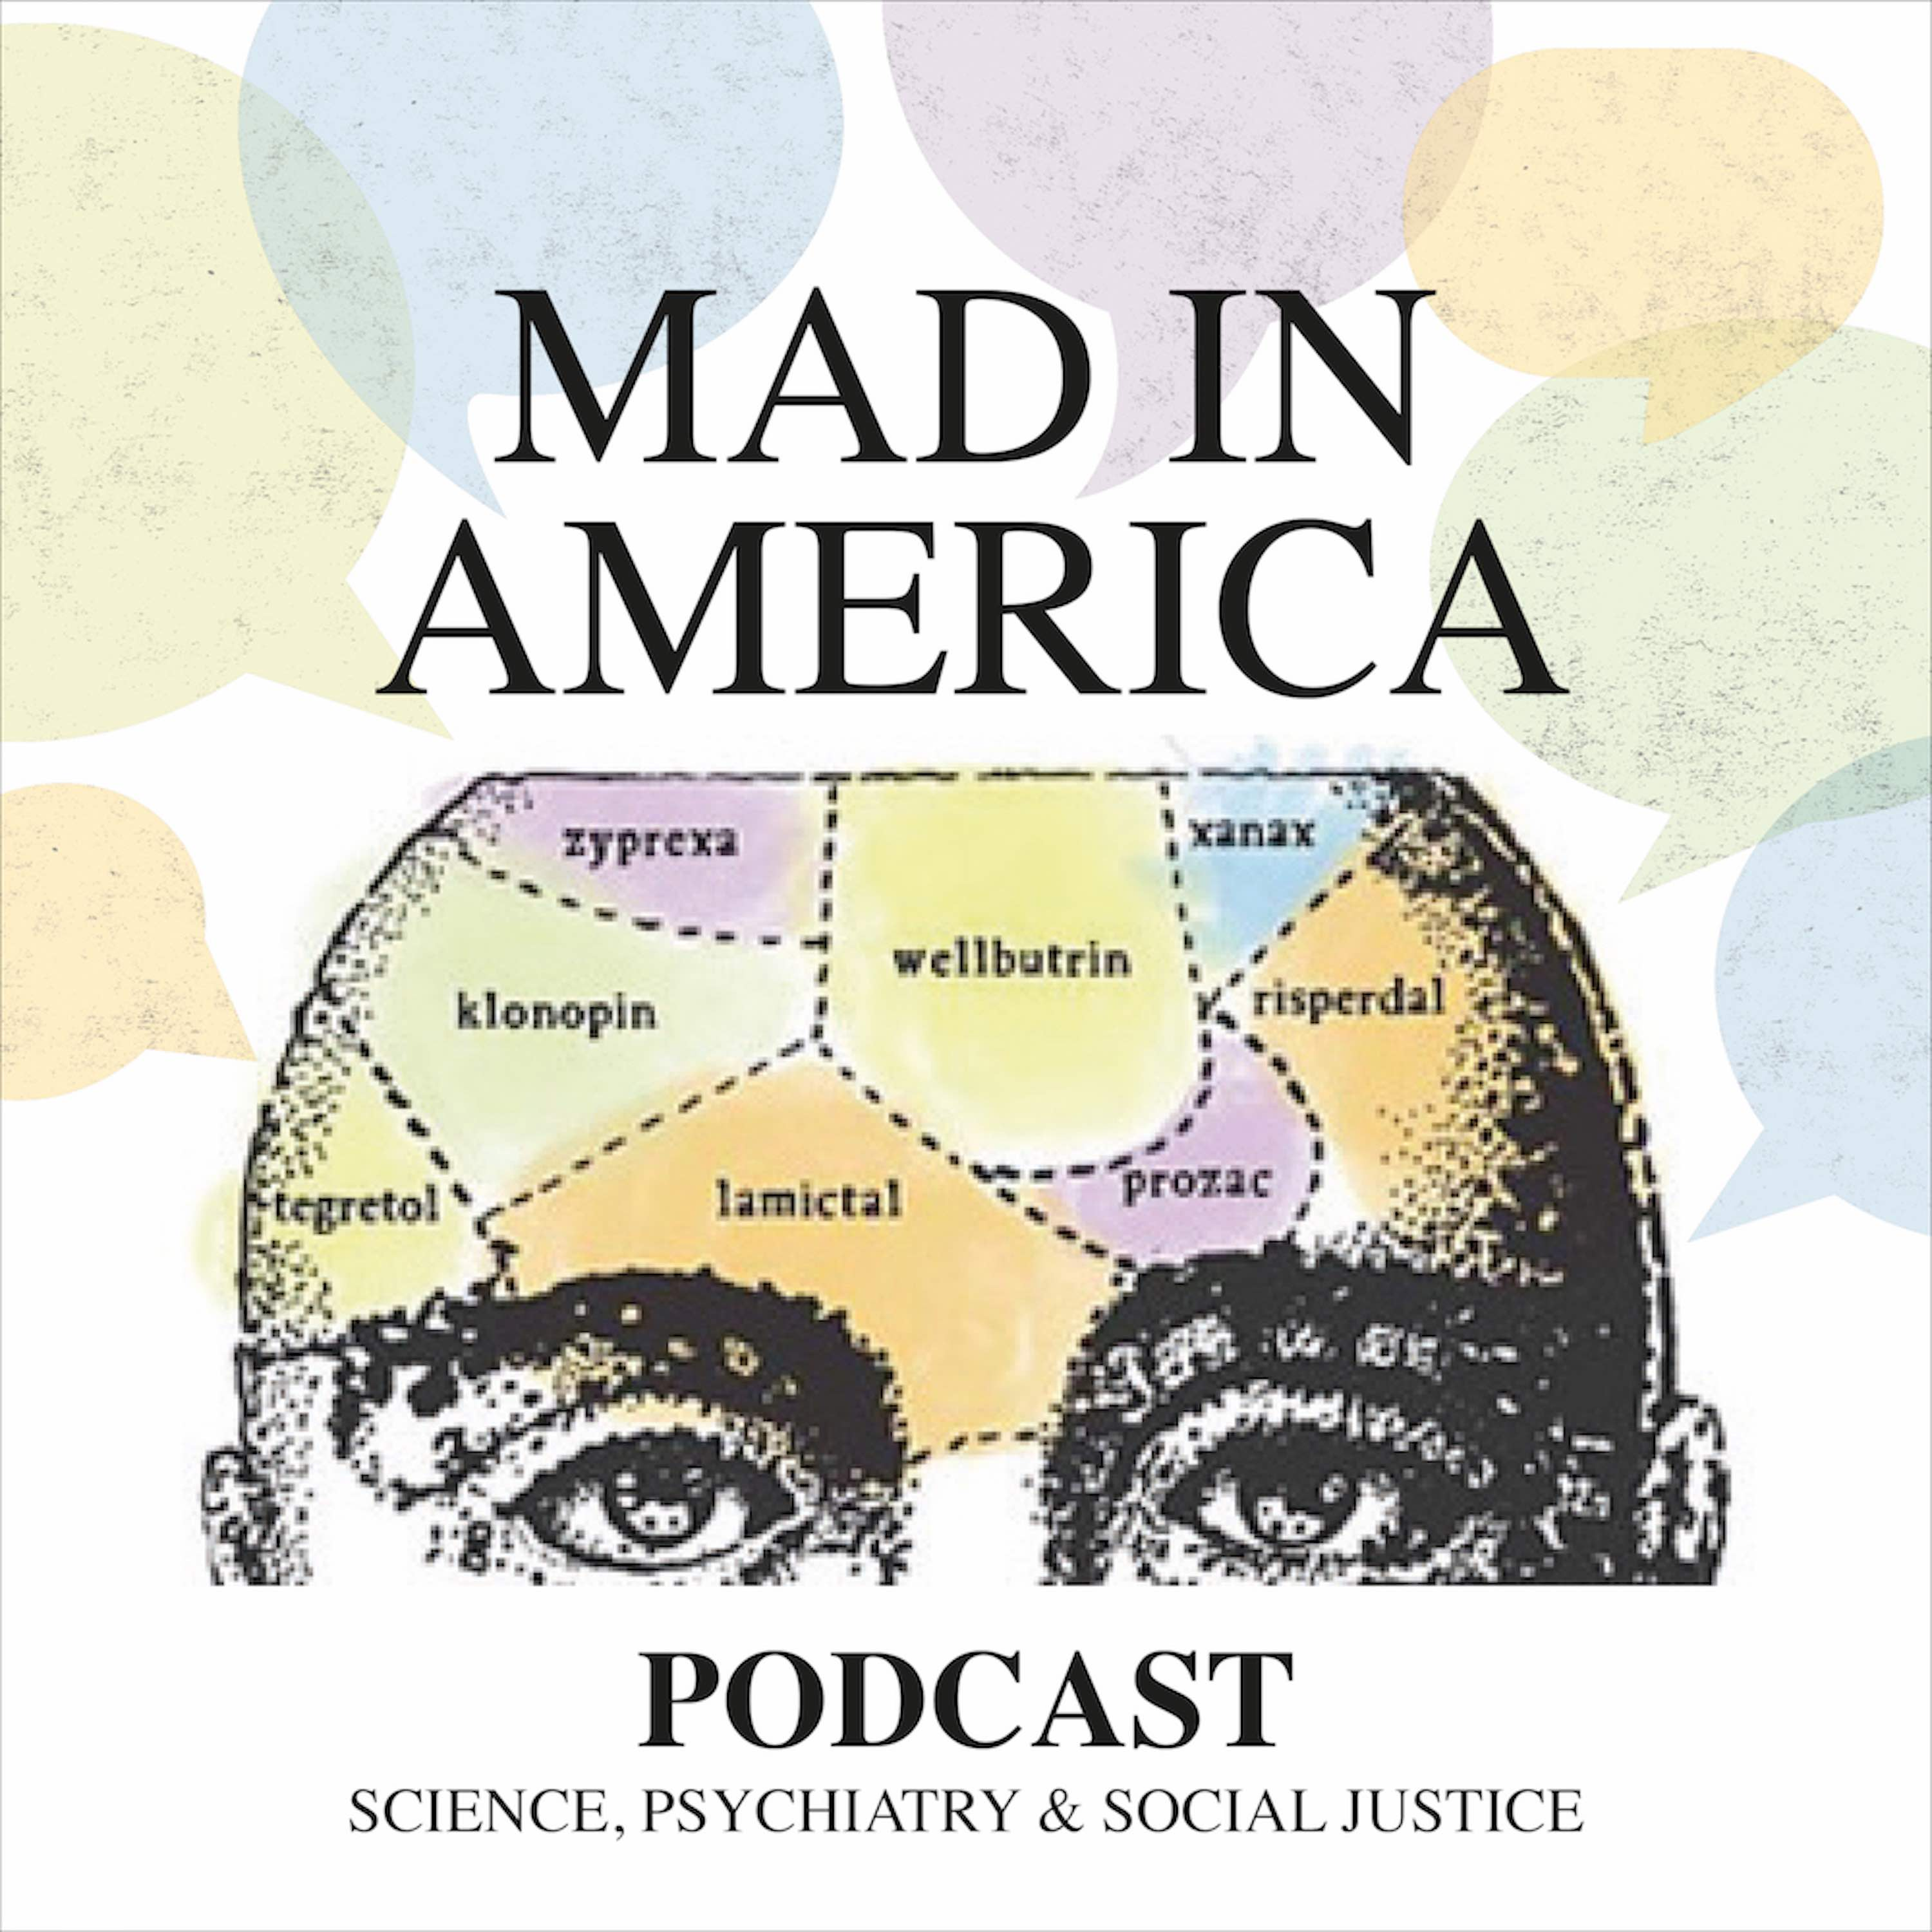 Mad in America: Rethinking Mental Health - Peter Gordon - Addressing the Divide Between the Arts and Medical Sciences